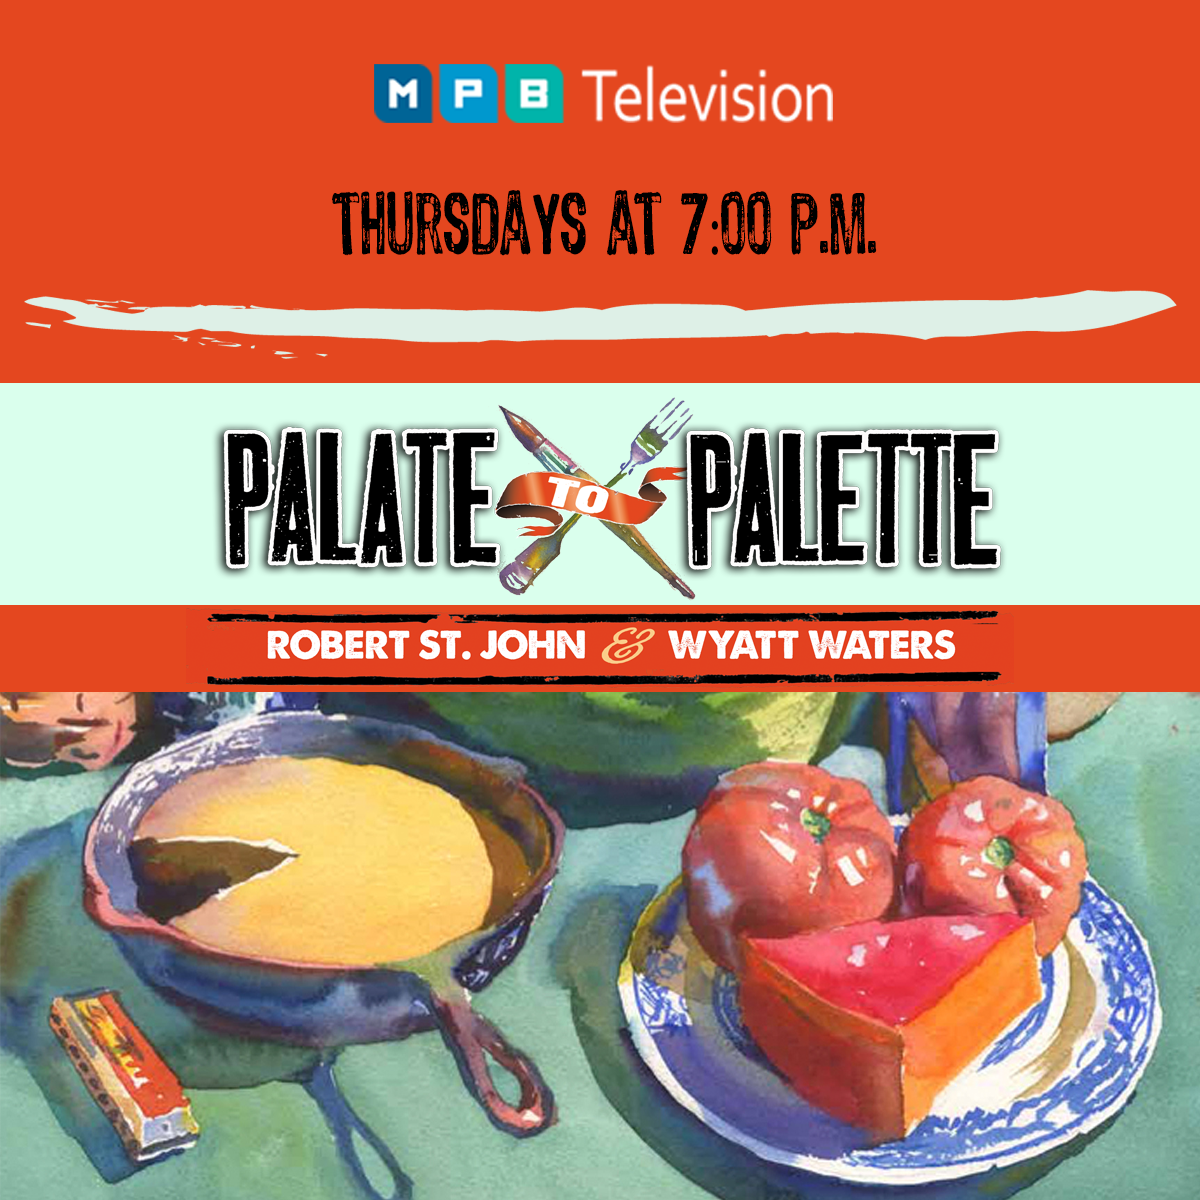 Watch Palate to Palette on Thursdays at 7 p.m. on MPB Television.